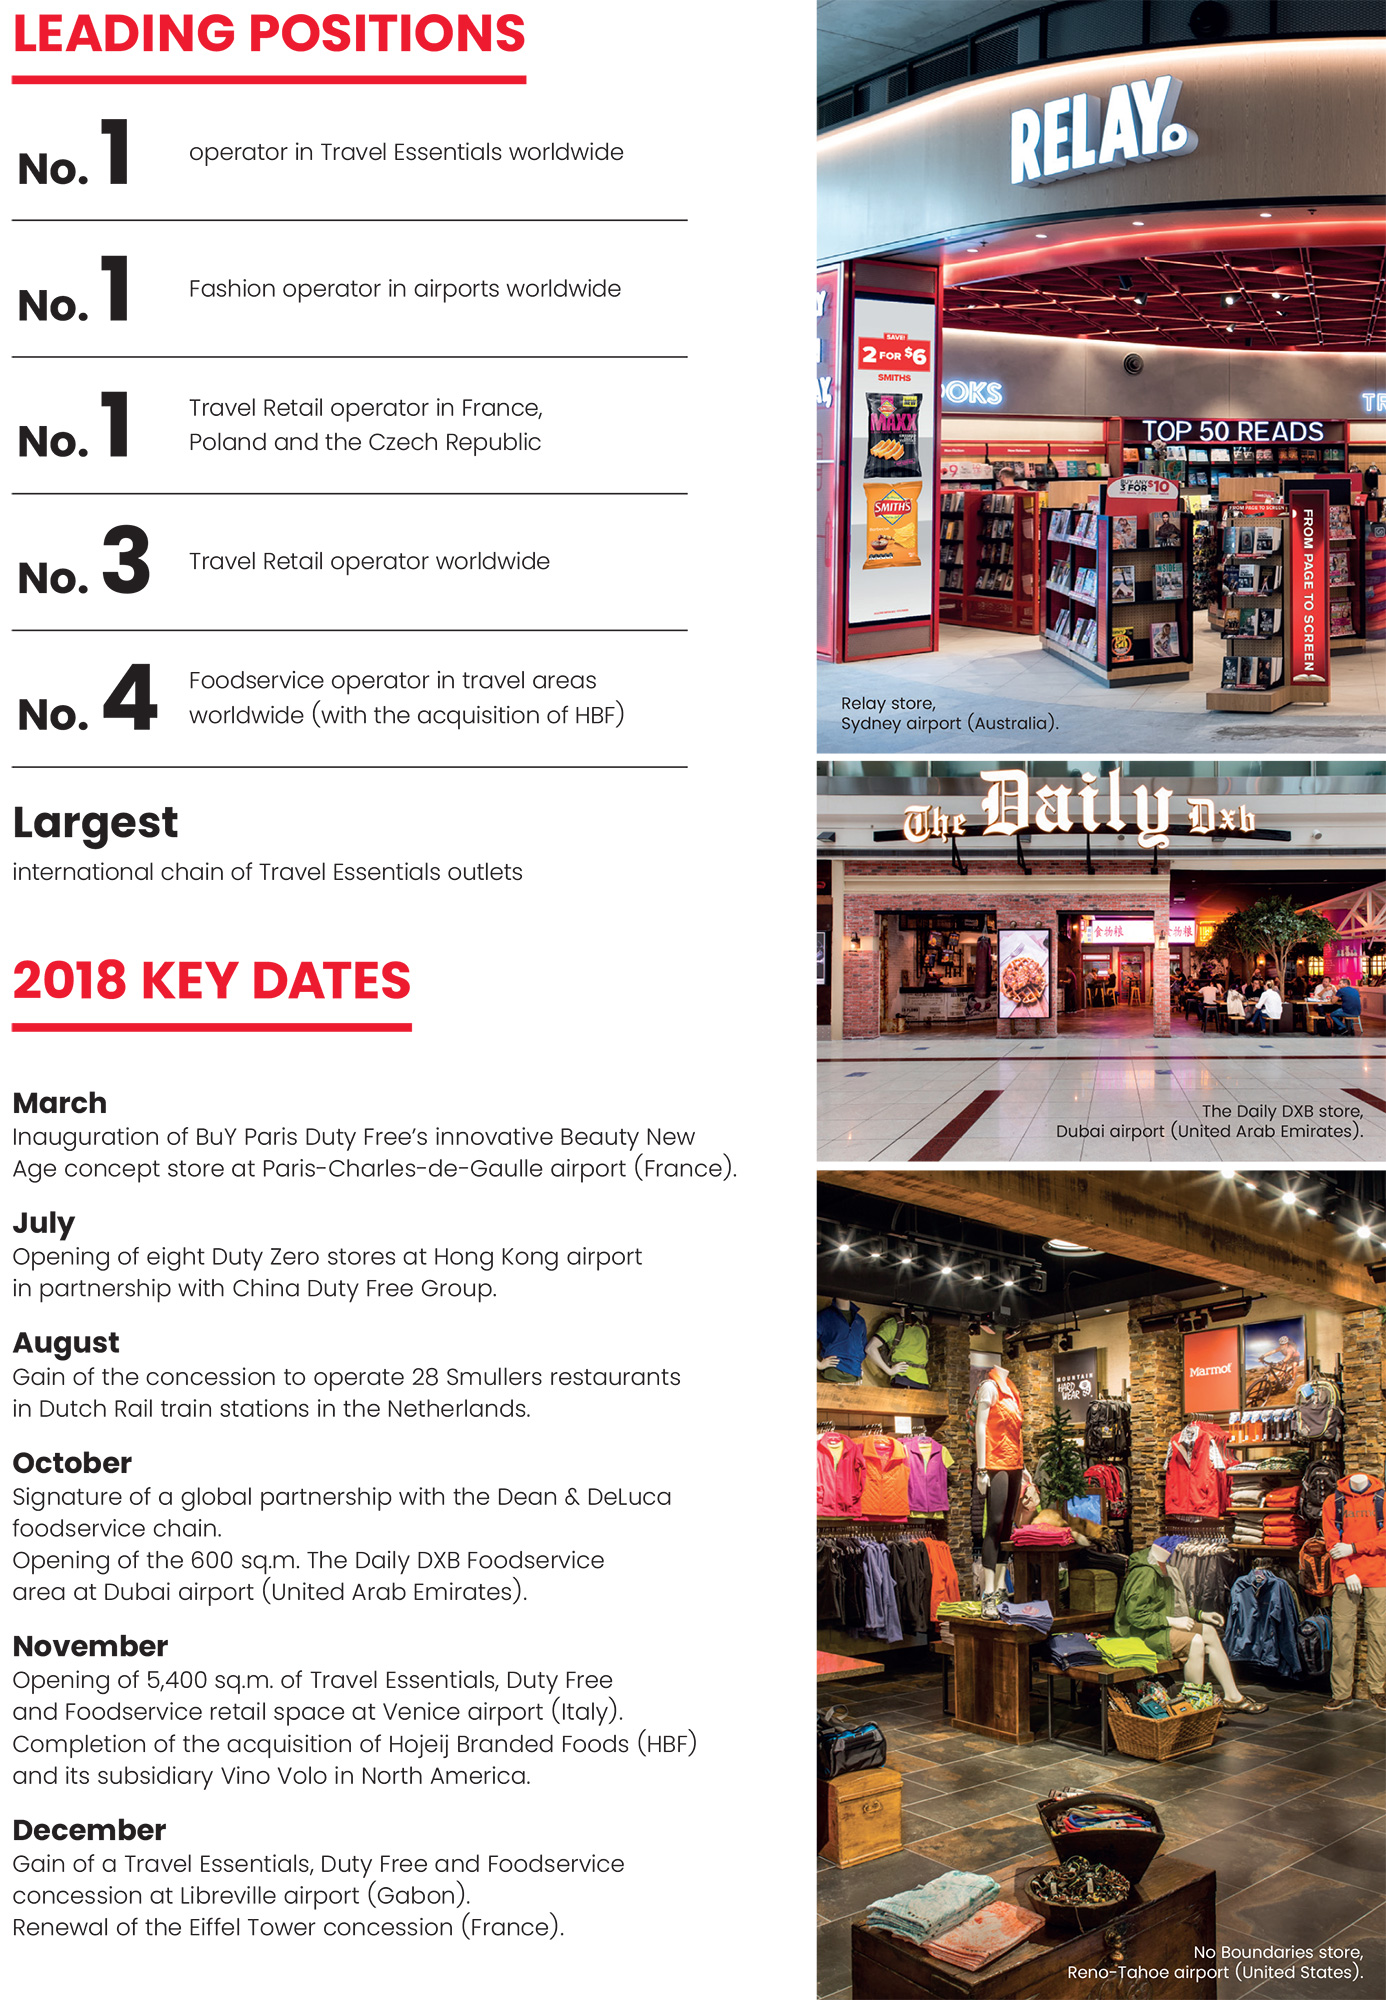 Lagardère Travel Retail: leading positions and key dates 2018